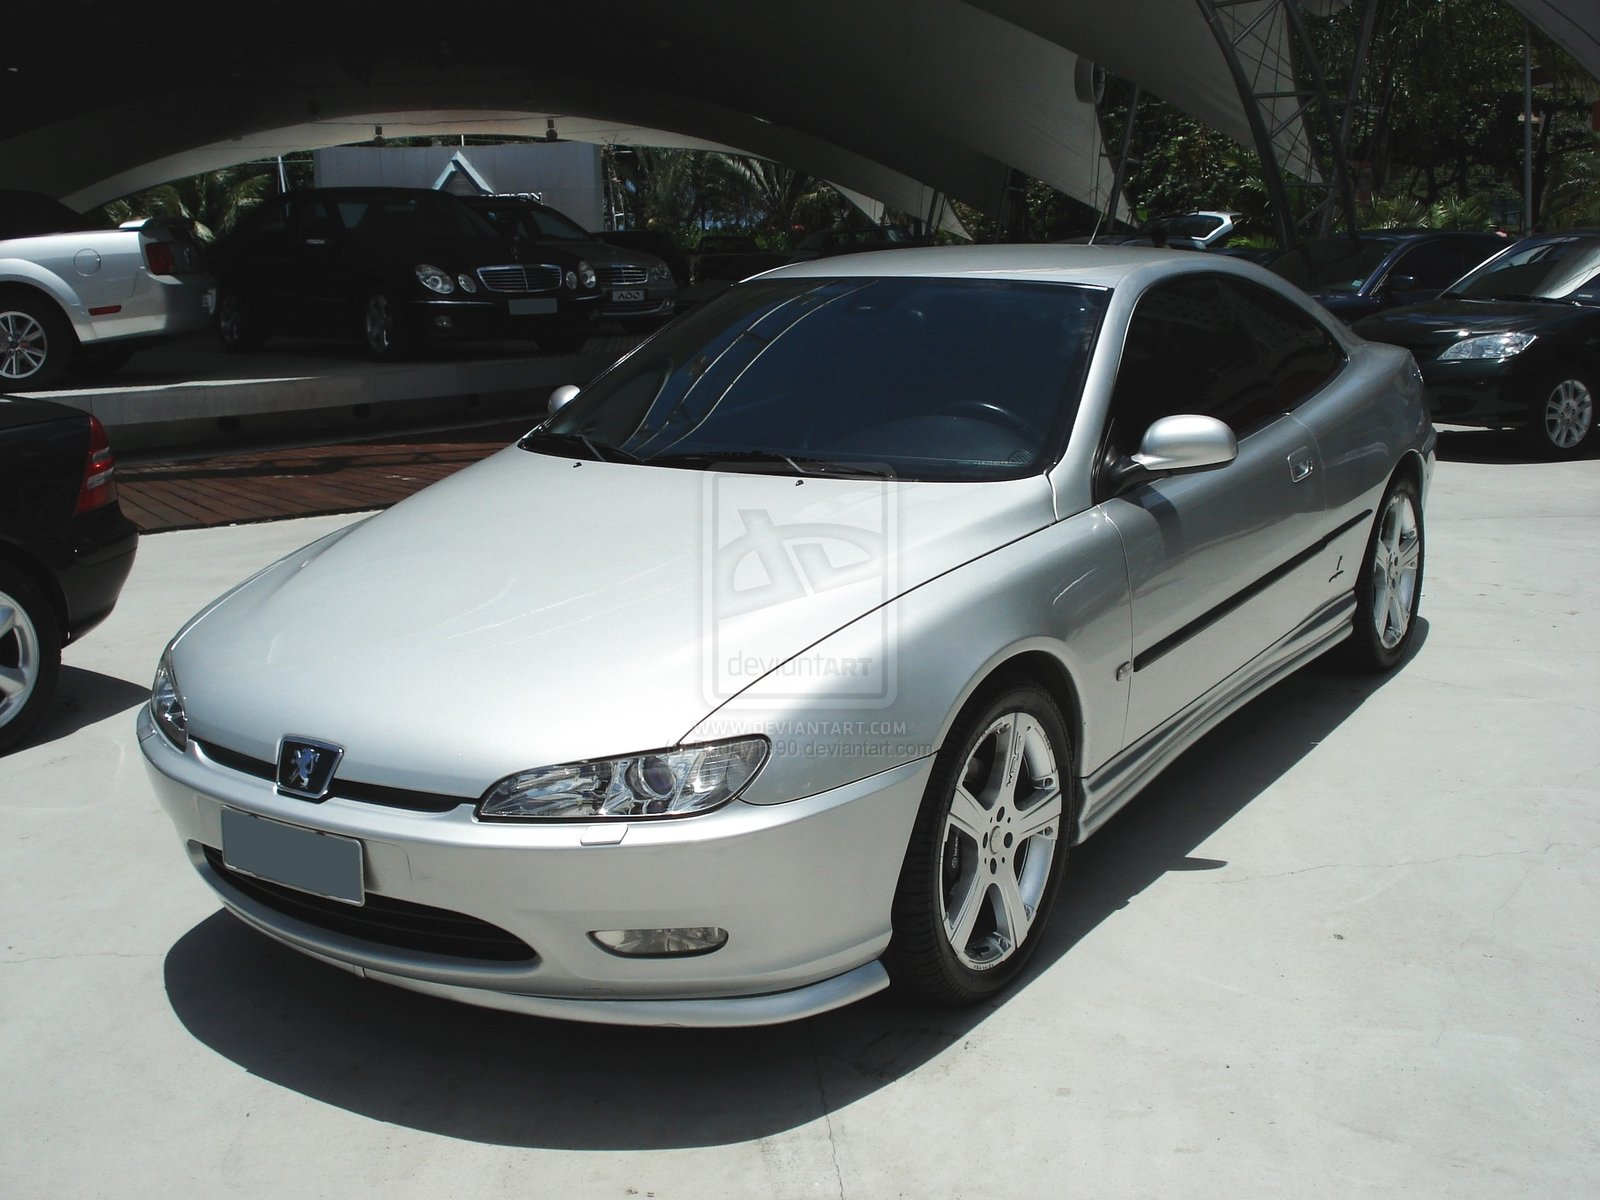 2000 peugeot 406 coupe 8 pictures information and specs auto. Black Bedroom Furniture Sets. Home Design Ideas